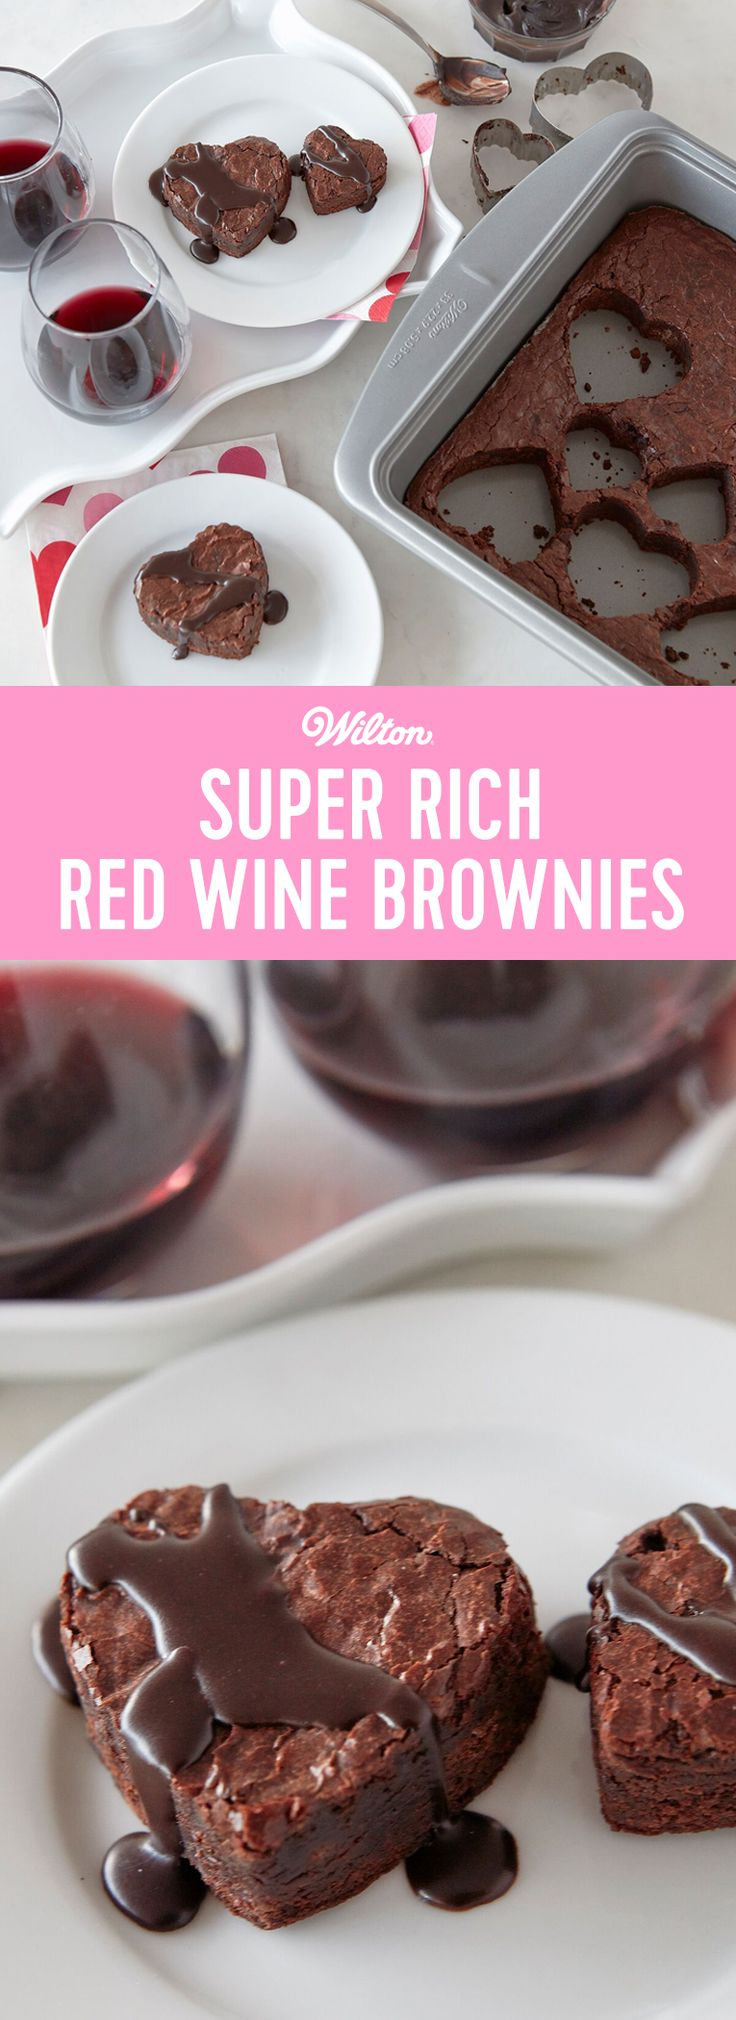 Create a decadent Valentine's Day dessert with these Super Rich Red Wine Brownies. Made using Dark Cocoa Candy Melts candy and your favorite cabernet sauvignon wine, these dark and rich brownies are the perfect dessert for Valentine's Day or an anniversary. Top your brownies with a chocolate wine glaze and serve alongside a glass of your favorite red wine for a tasty ending to any romantic dinner. #wiltoncakes #valentinesday #valentinesdaydesserts #valentines #brownies #redwine #recipes…